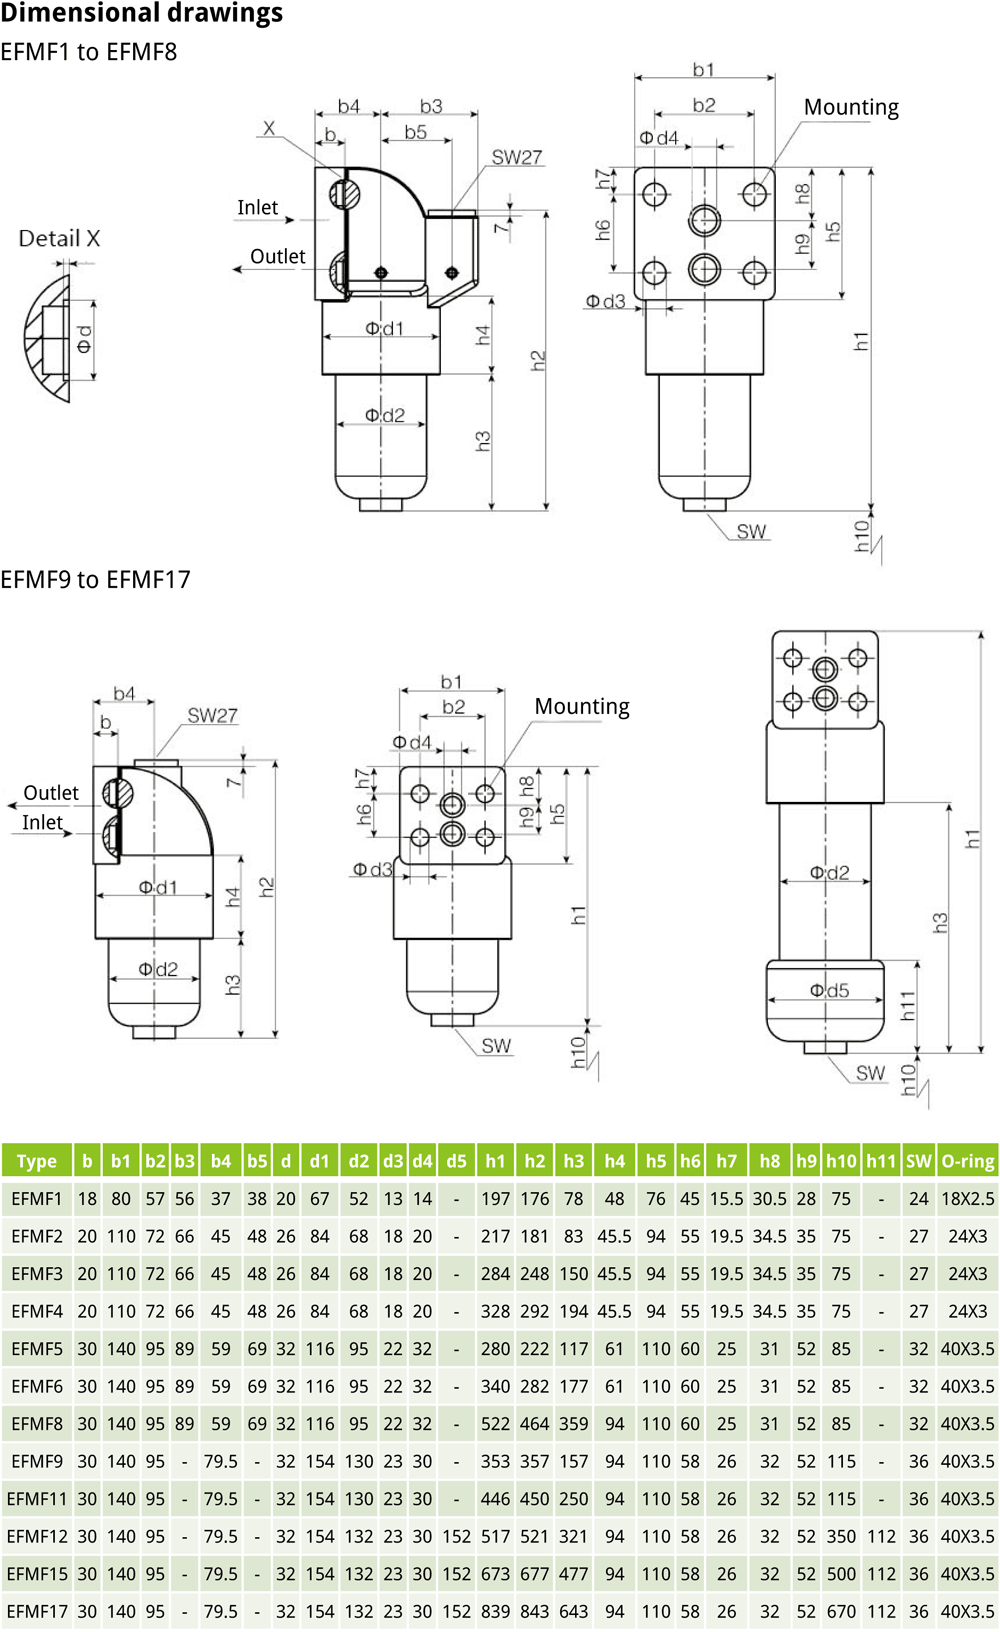 EVOTEK EFMF technical drawing